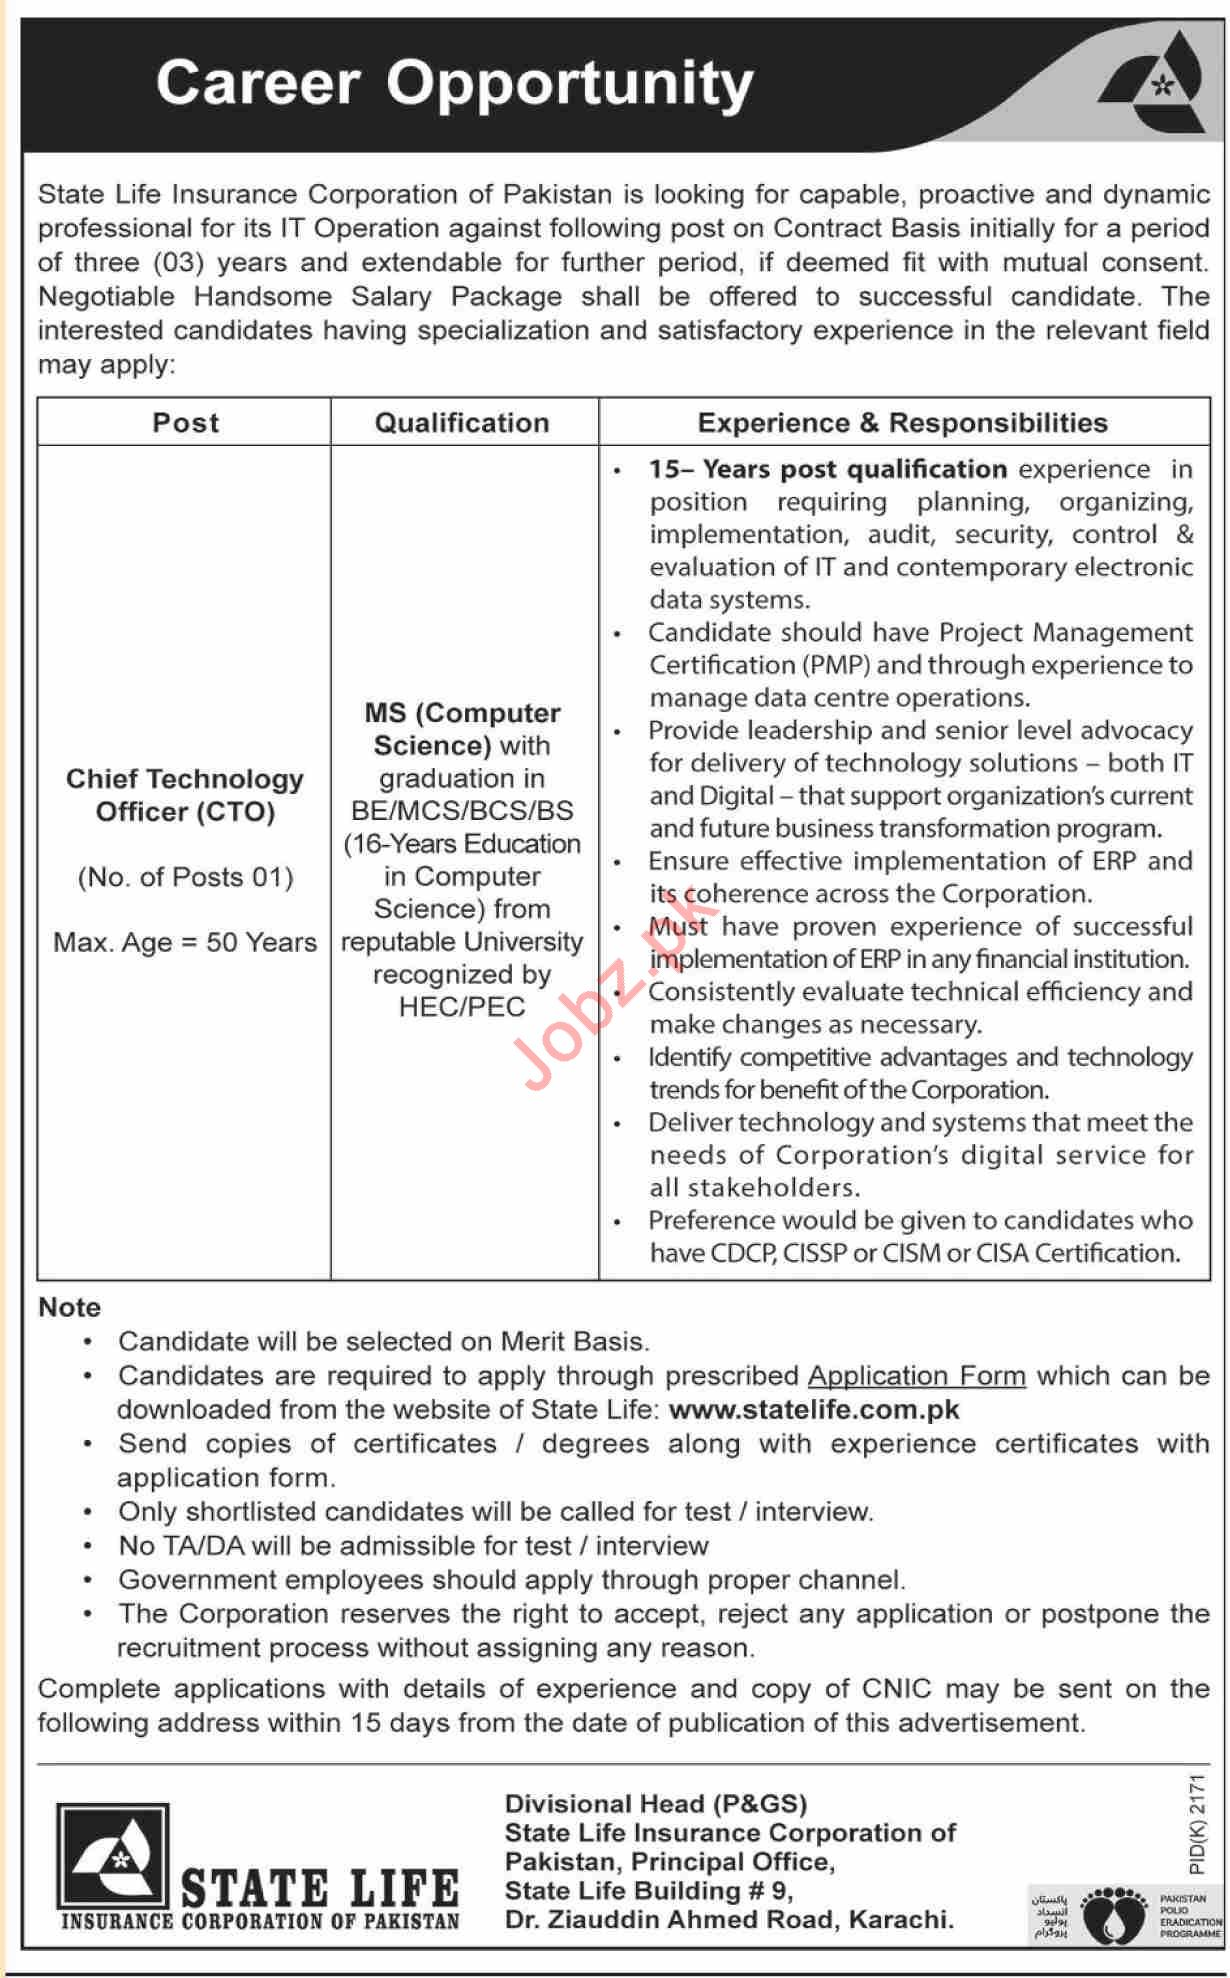 Chief Technology Officer Jobs in State Life Insurance